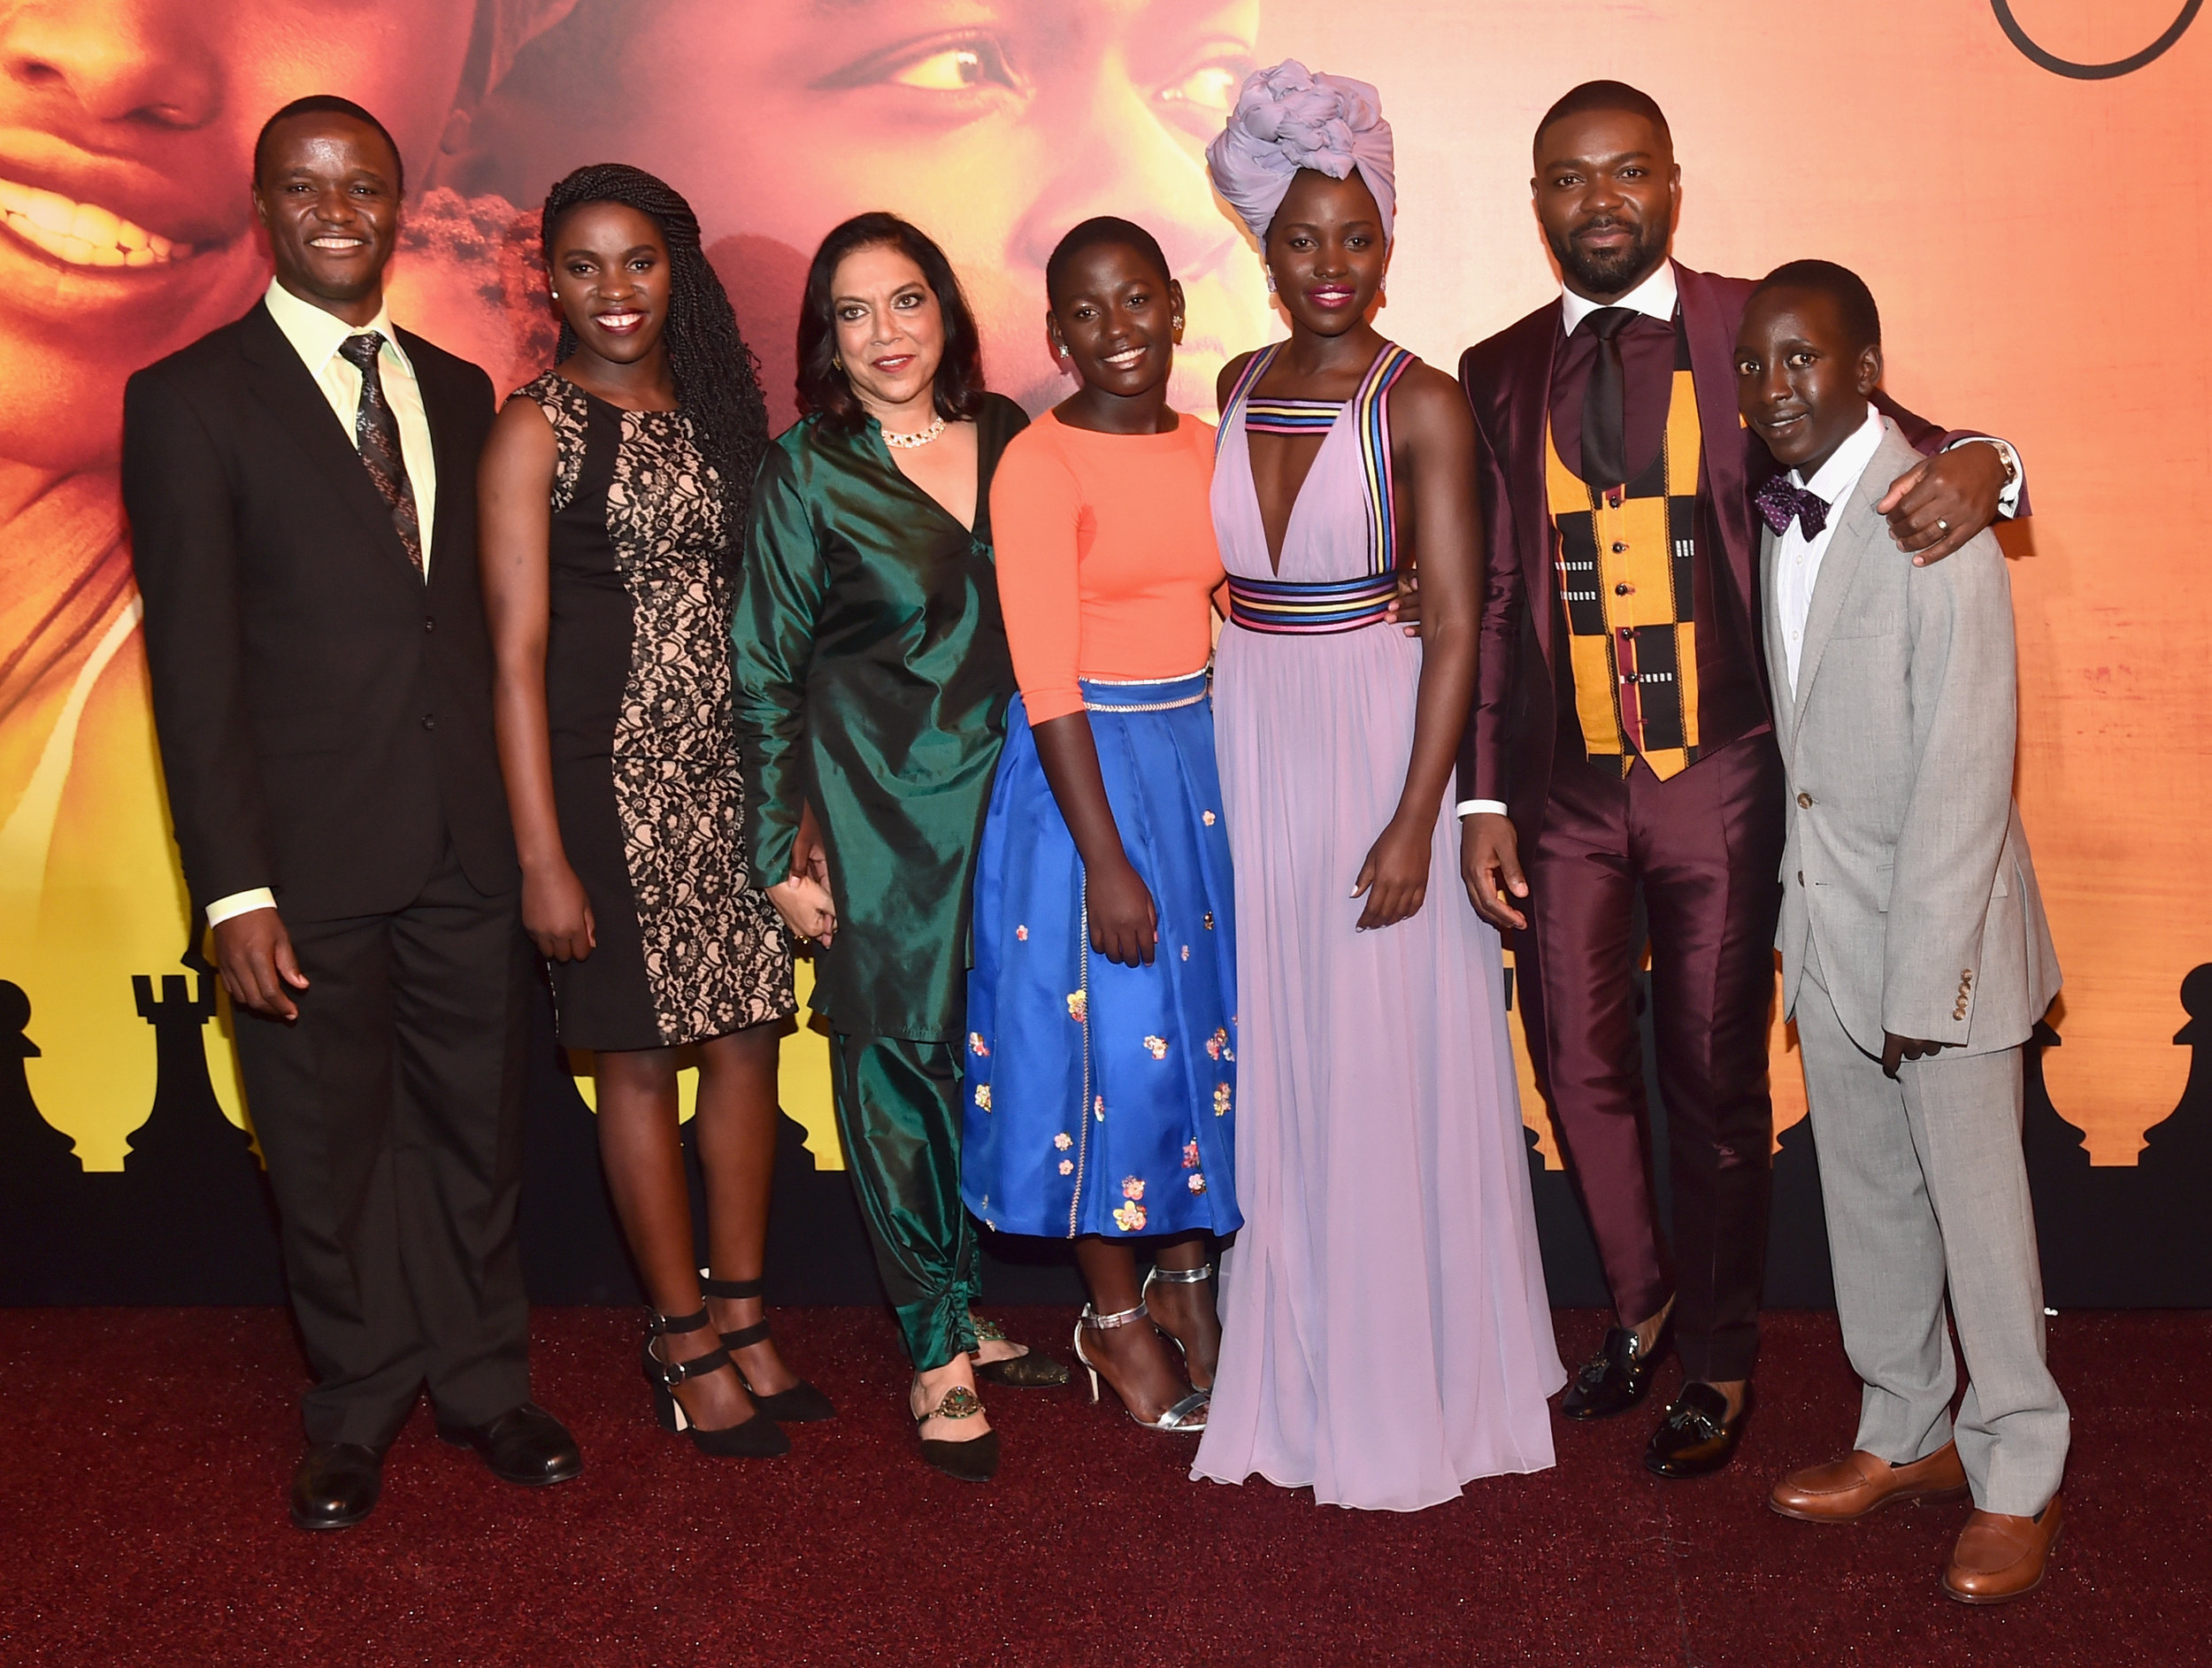 Hollywood Premiere of Queen of Katwe (Photo by Alberto E. Rodriguez/Getty Images for Disney)